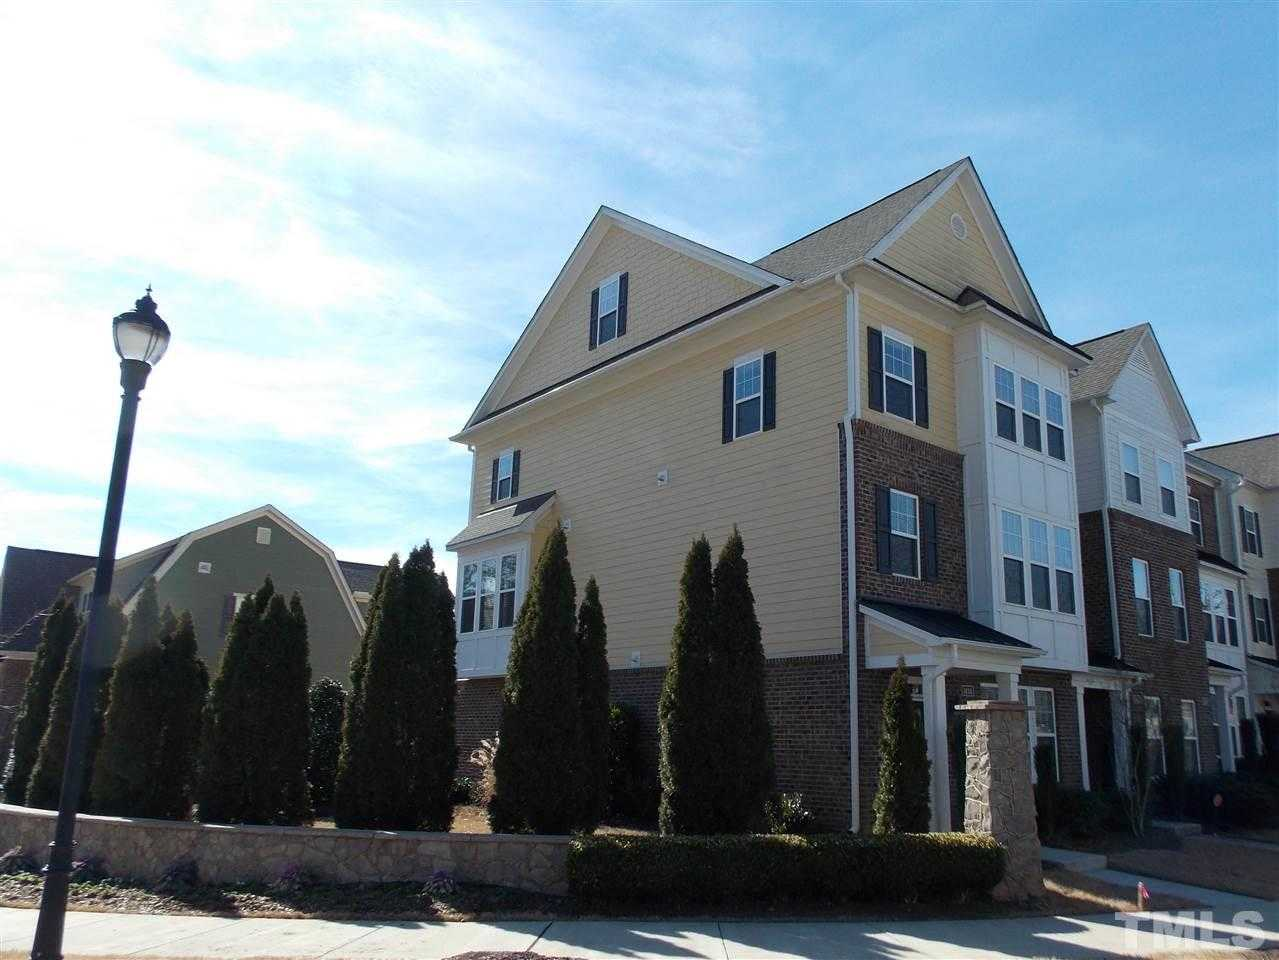 $2,450 - 4Br/4Ba -  for Sale in Inside Wade Townhomes, Raleigh